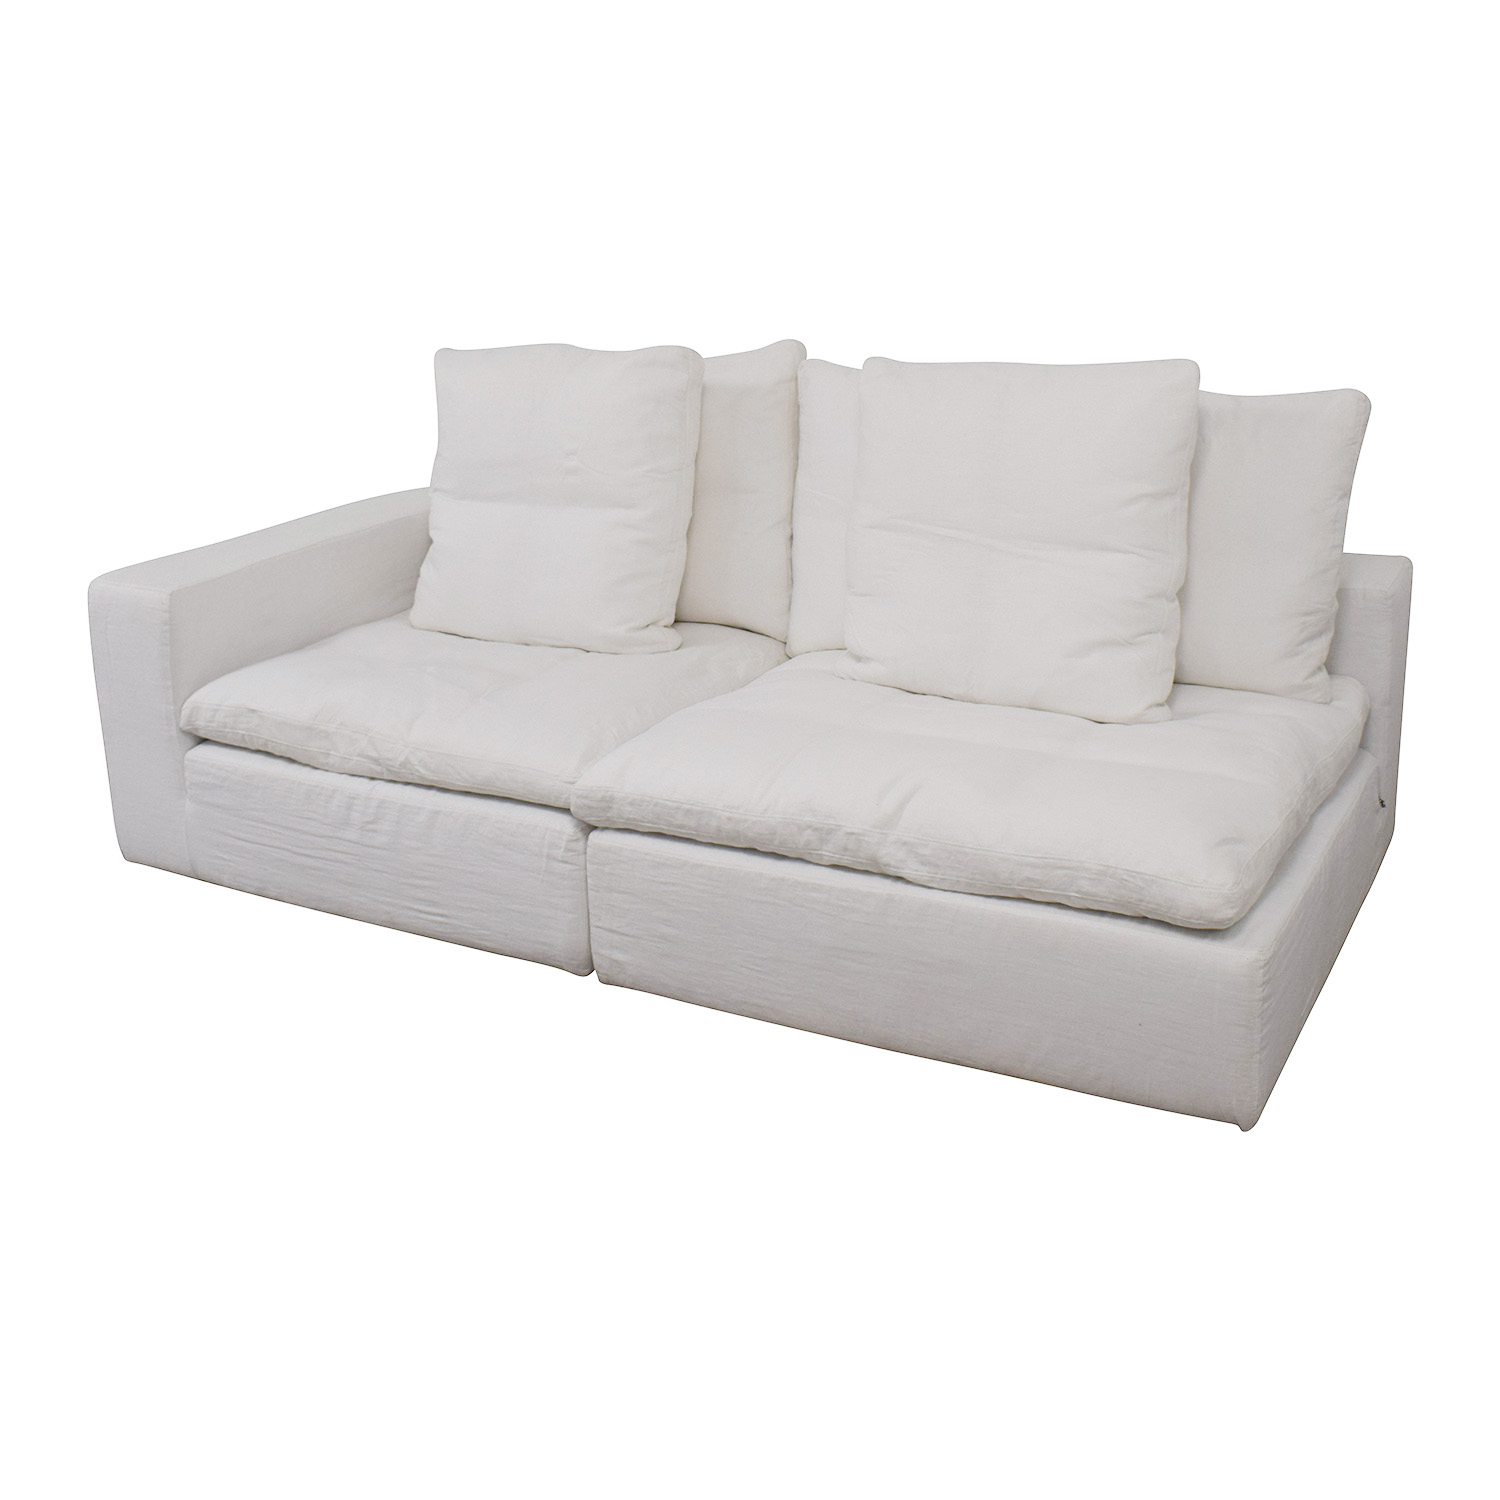 buy Restoration Hardware Restoration Hardware Cloud Modular Corner Chair and Armless Chair online